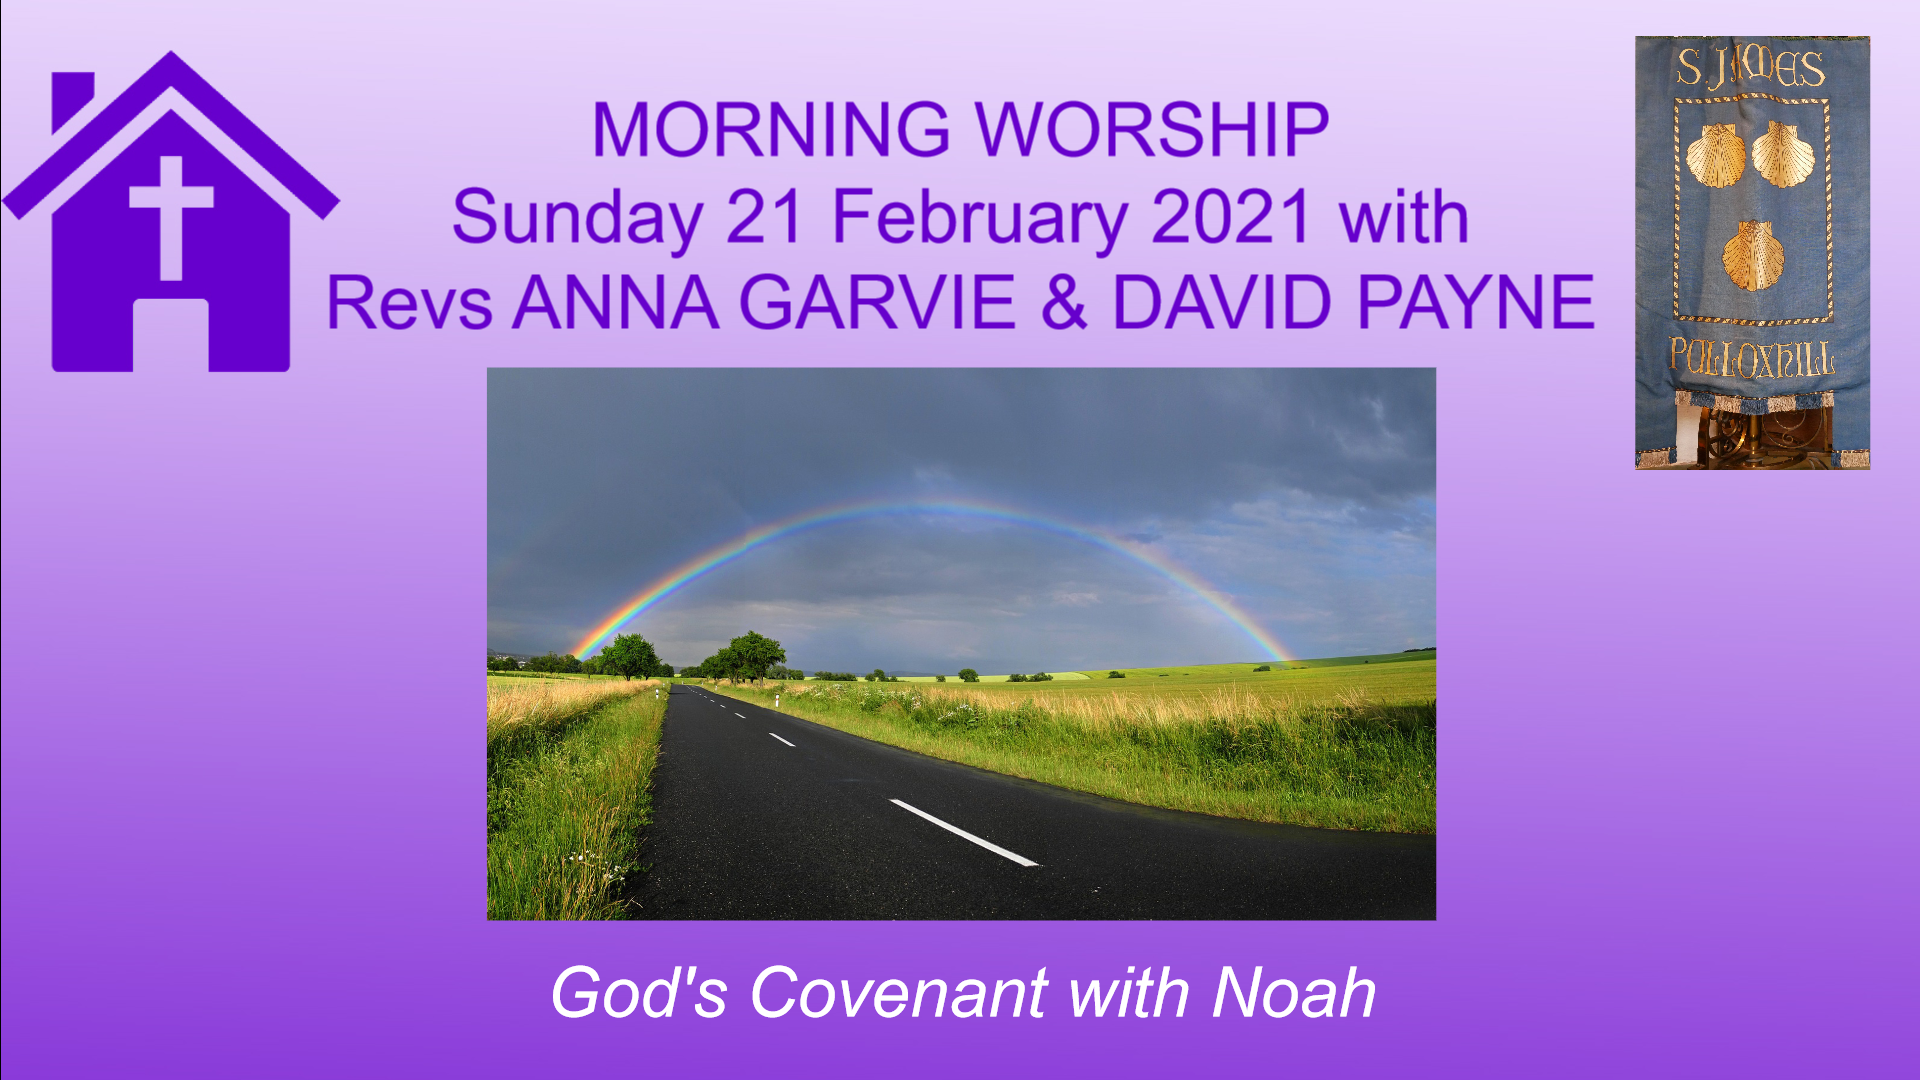 God's Covenant with Noah